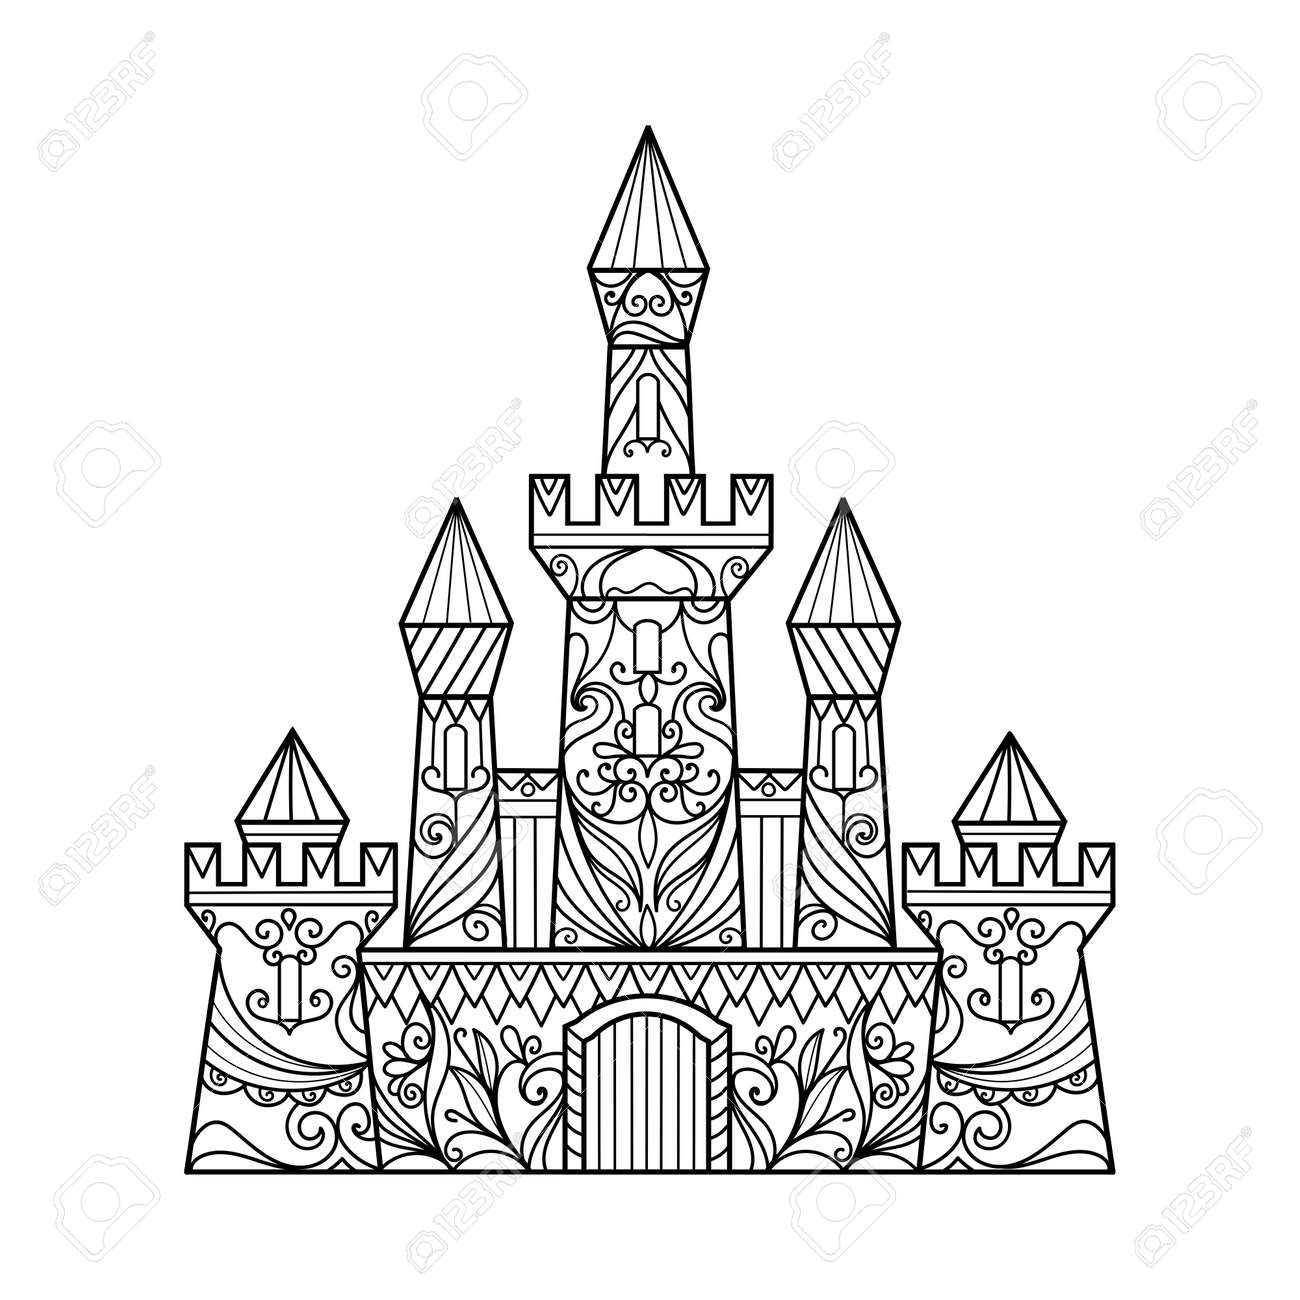 Castle Coloring Book For Adults Vector Illustration. Anti-stress ...